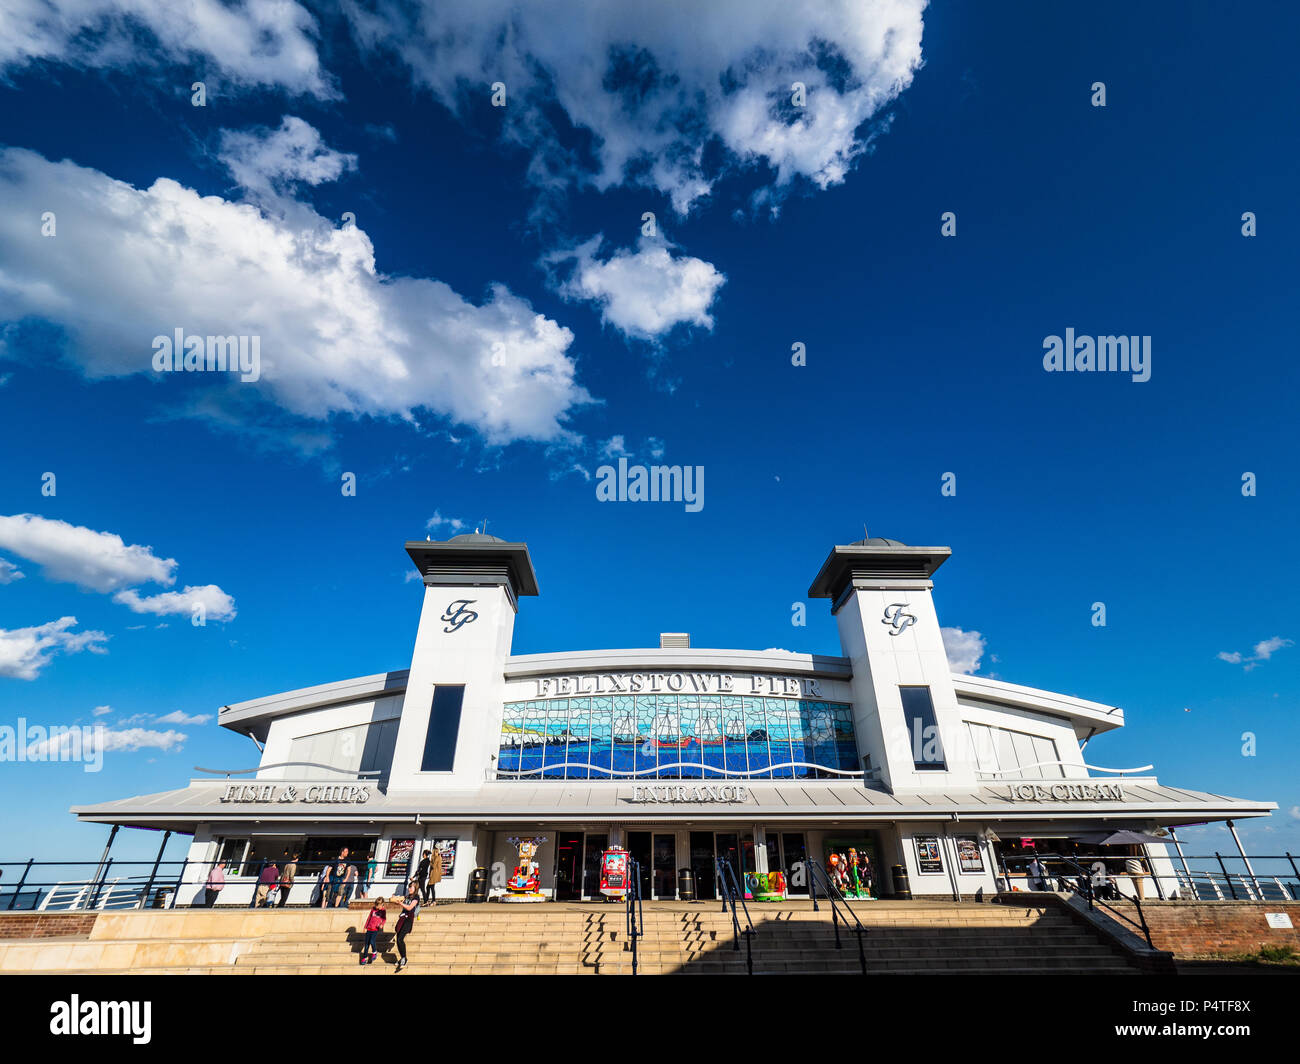 Felixstowe Pier - the refurbished pier at the English seaside resort and container port of Felixstowe, originally opened in 1905, refurbished 2017 - Stock Image